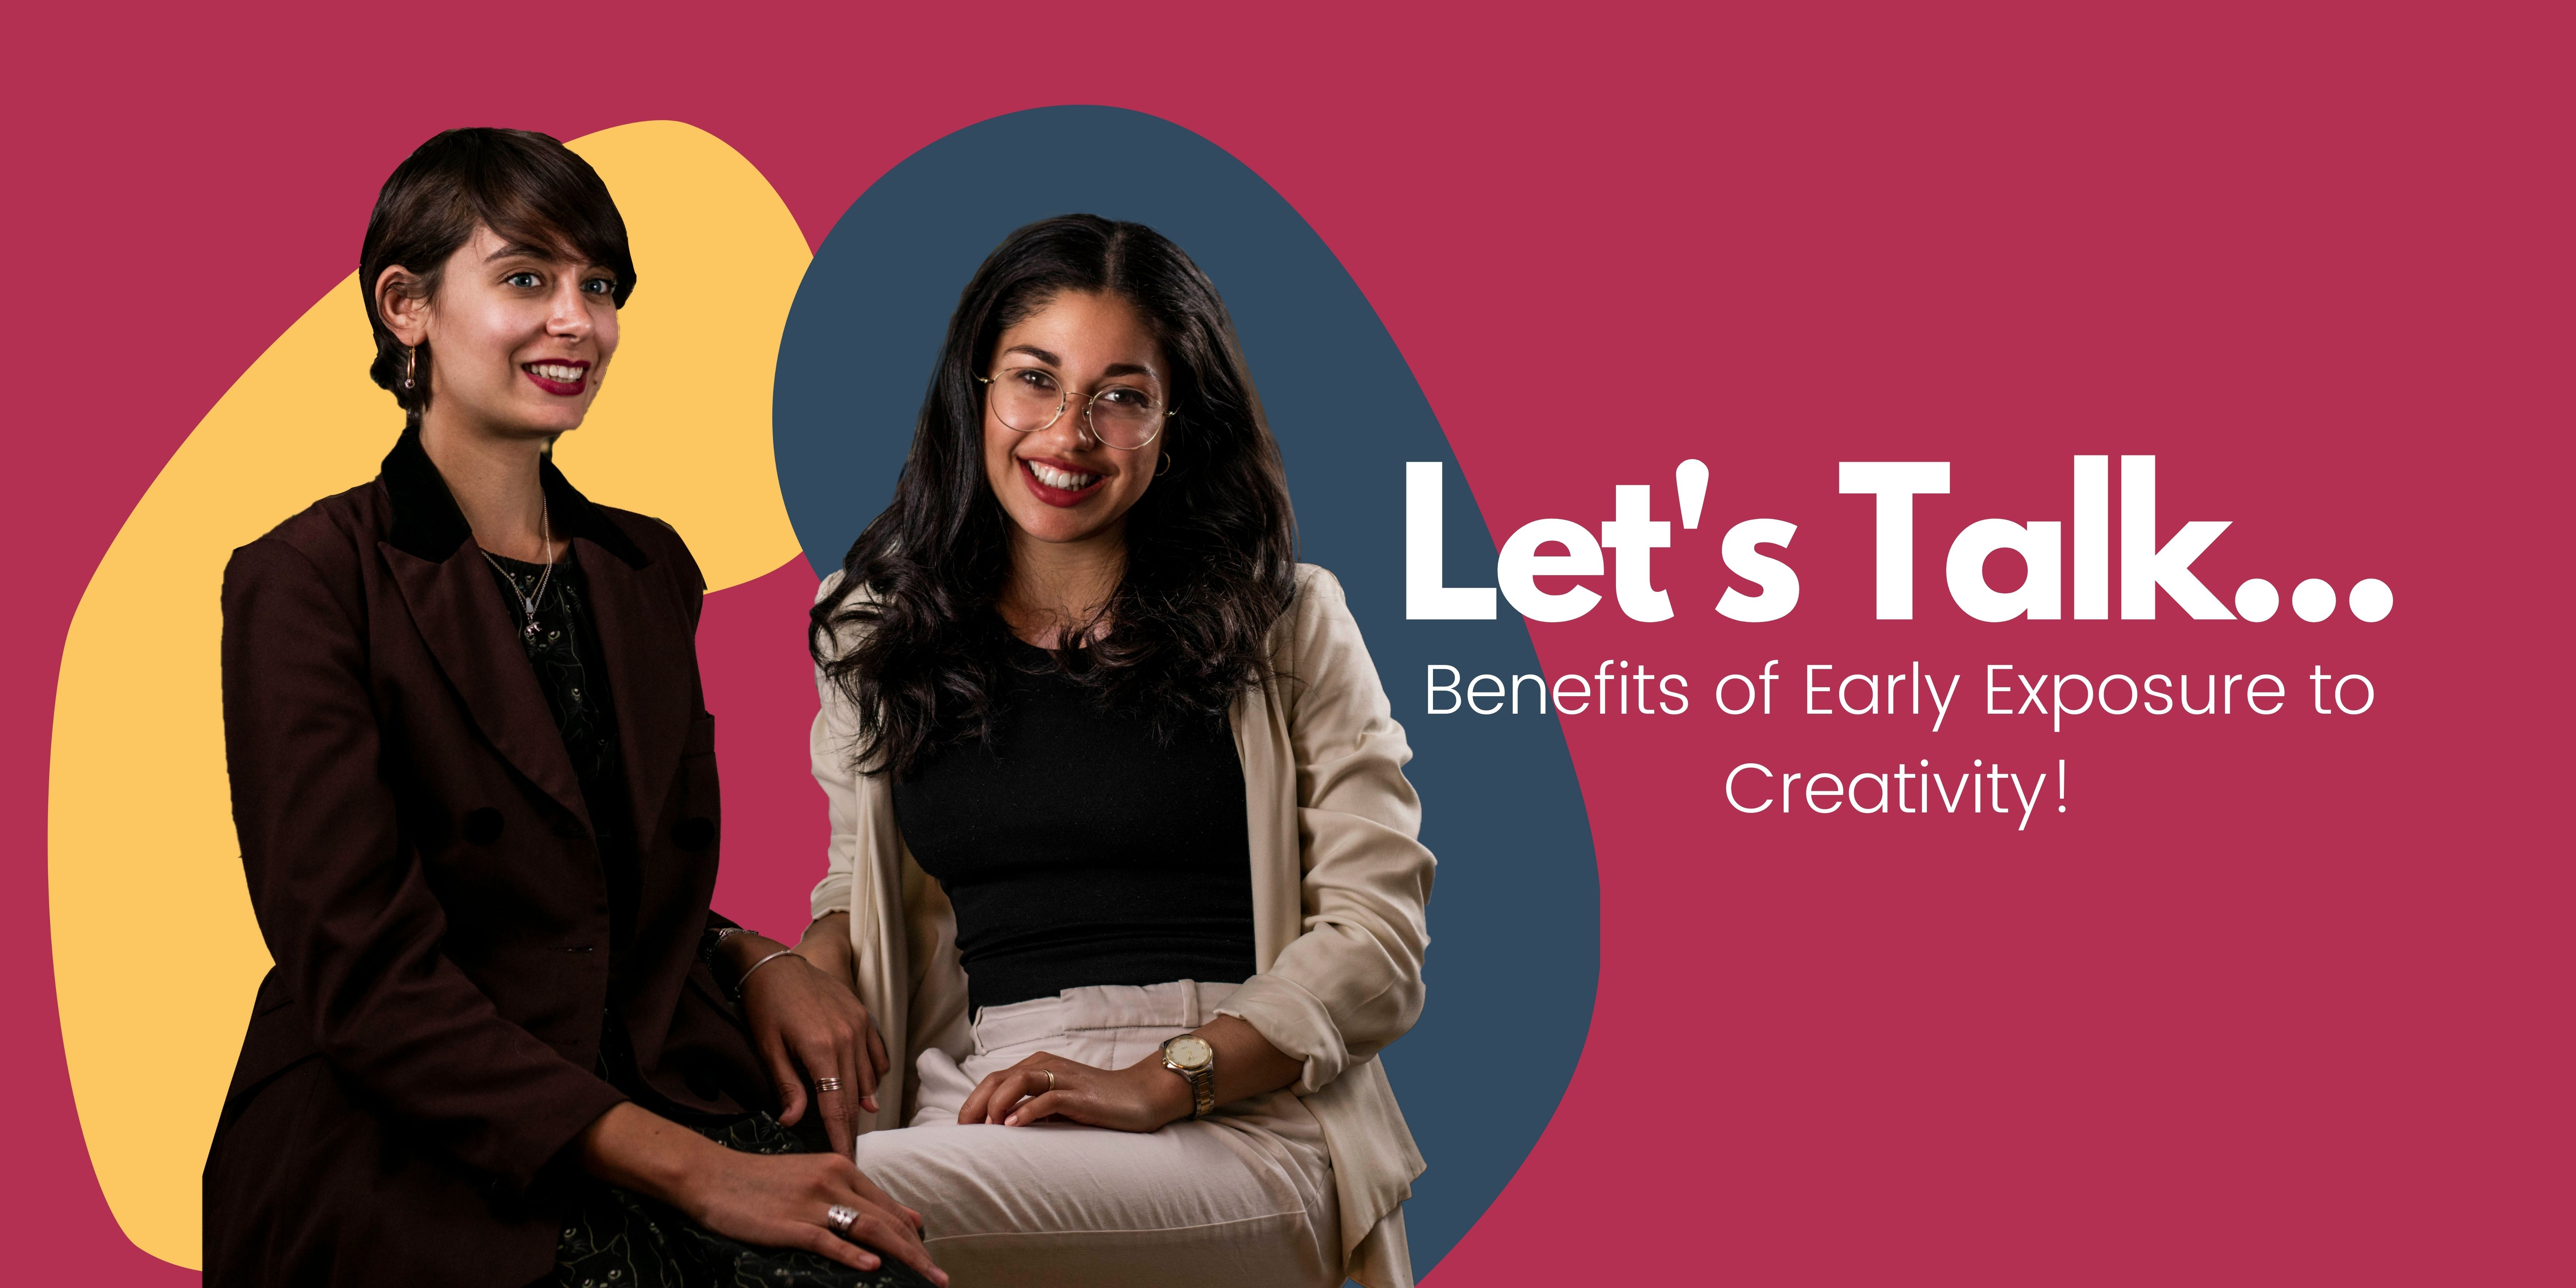 Benefits of Early Exposure to Creativity Video